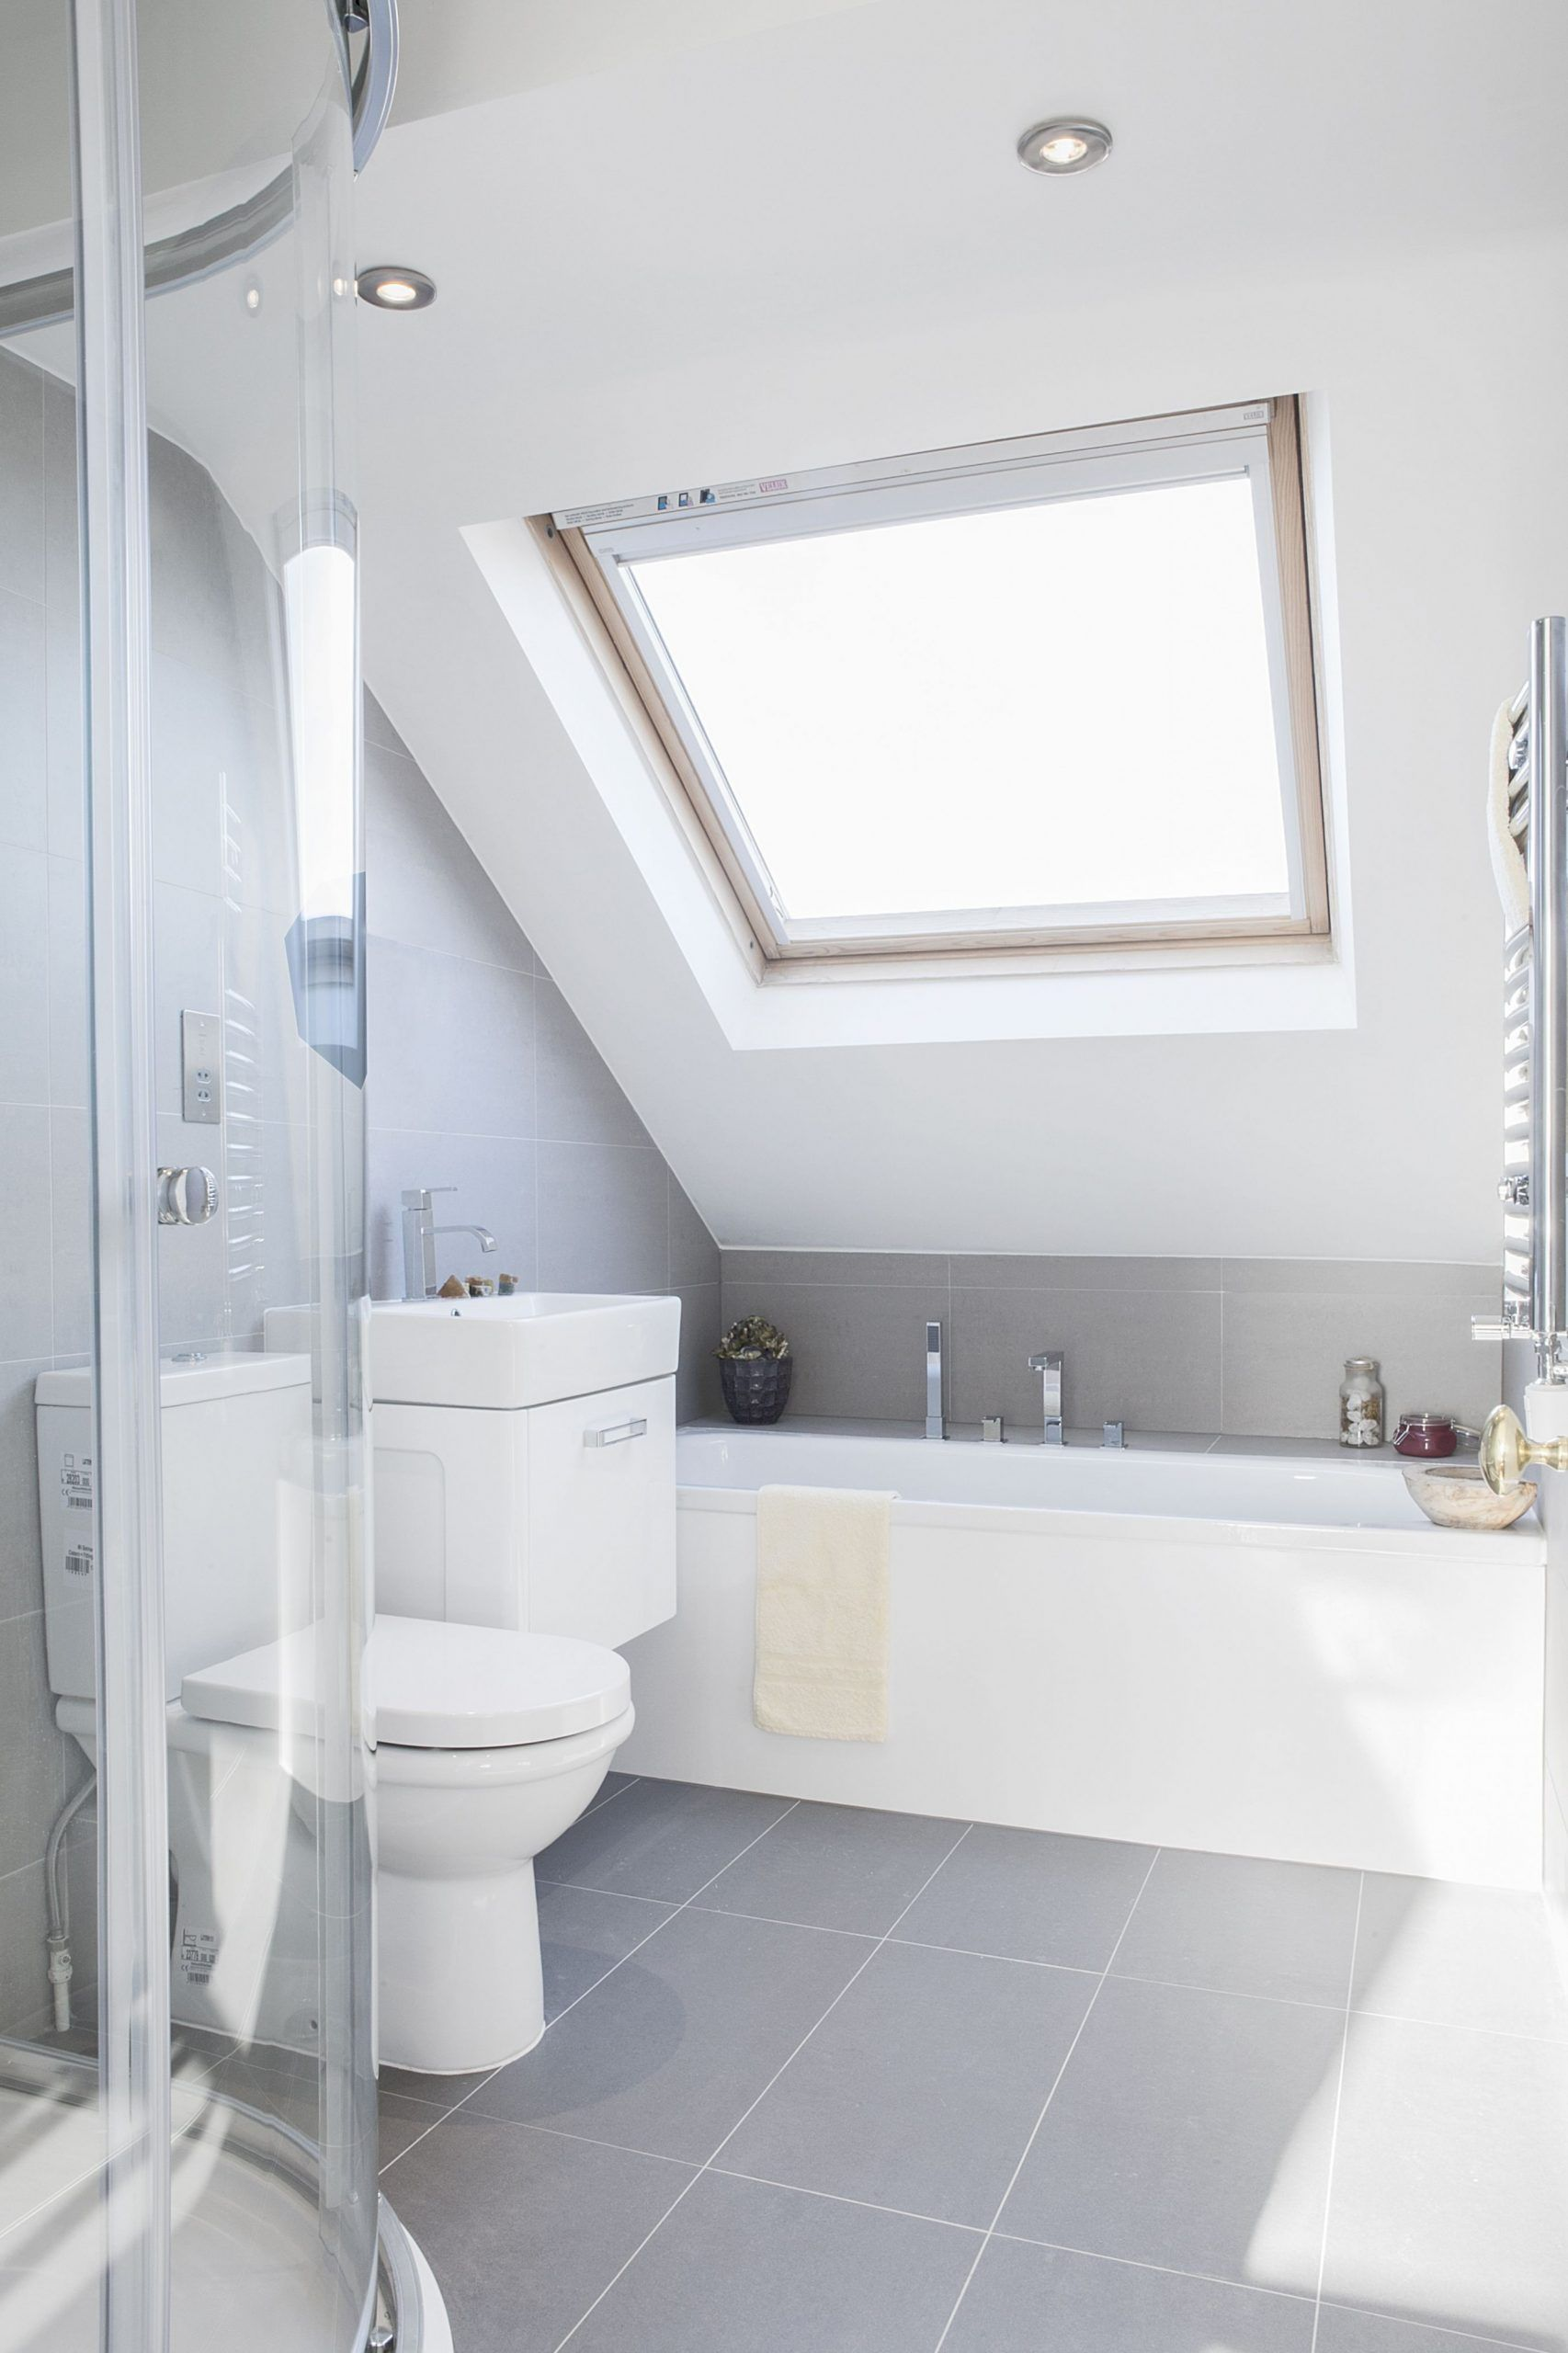 Pin By Wenimenet On Home Ideas Small Attic Bathroom Attic Bedroom Designs Attic Bedroom Small